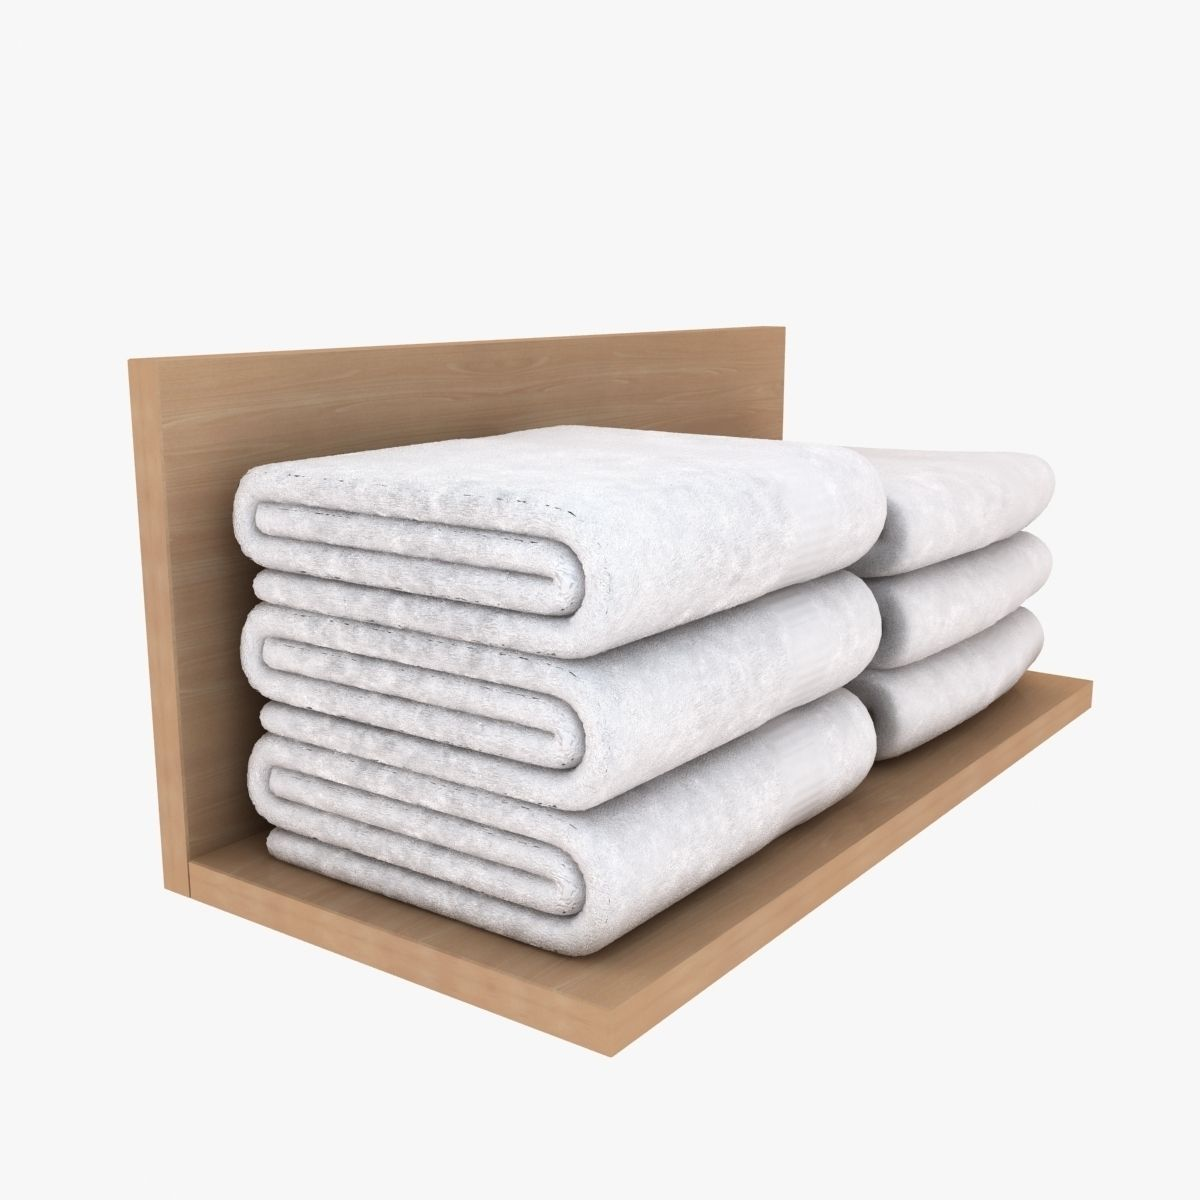 White folded towels 3d model max obj 3ds fbx for How to get towels white